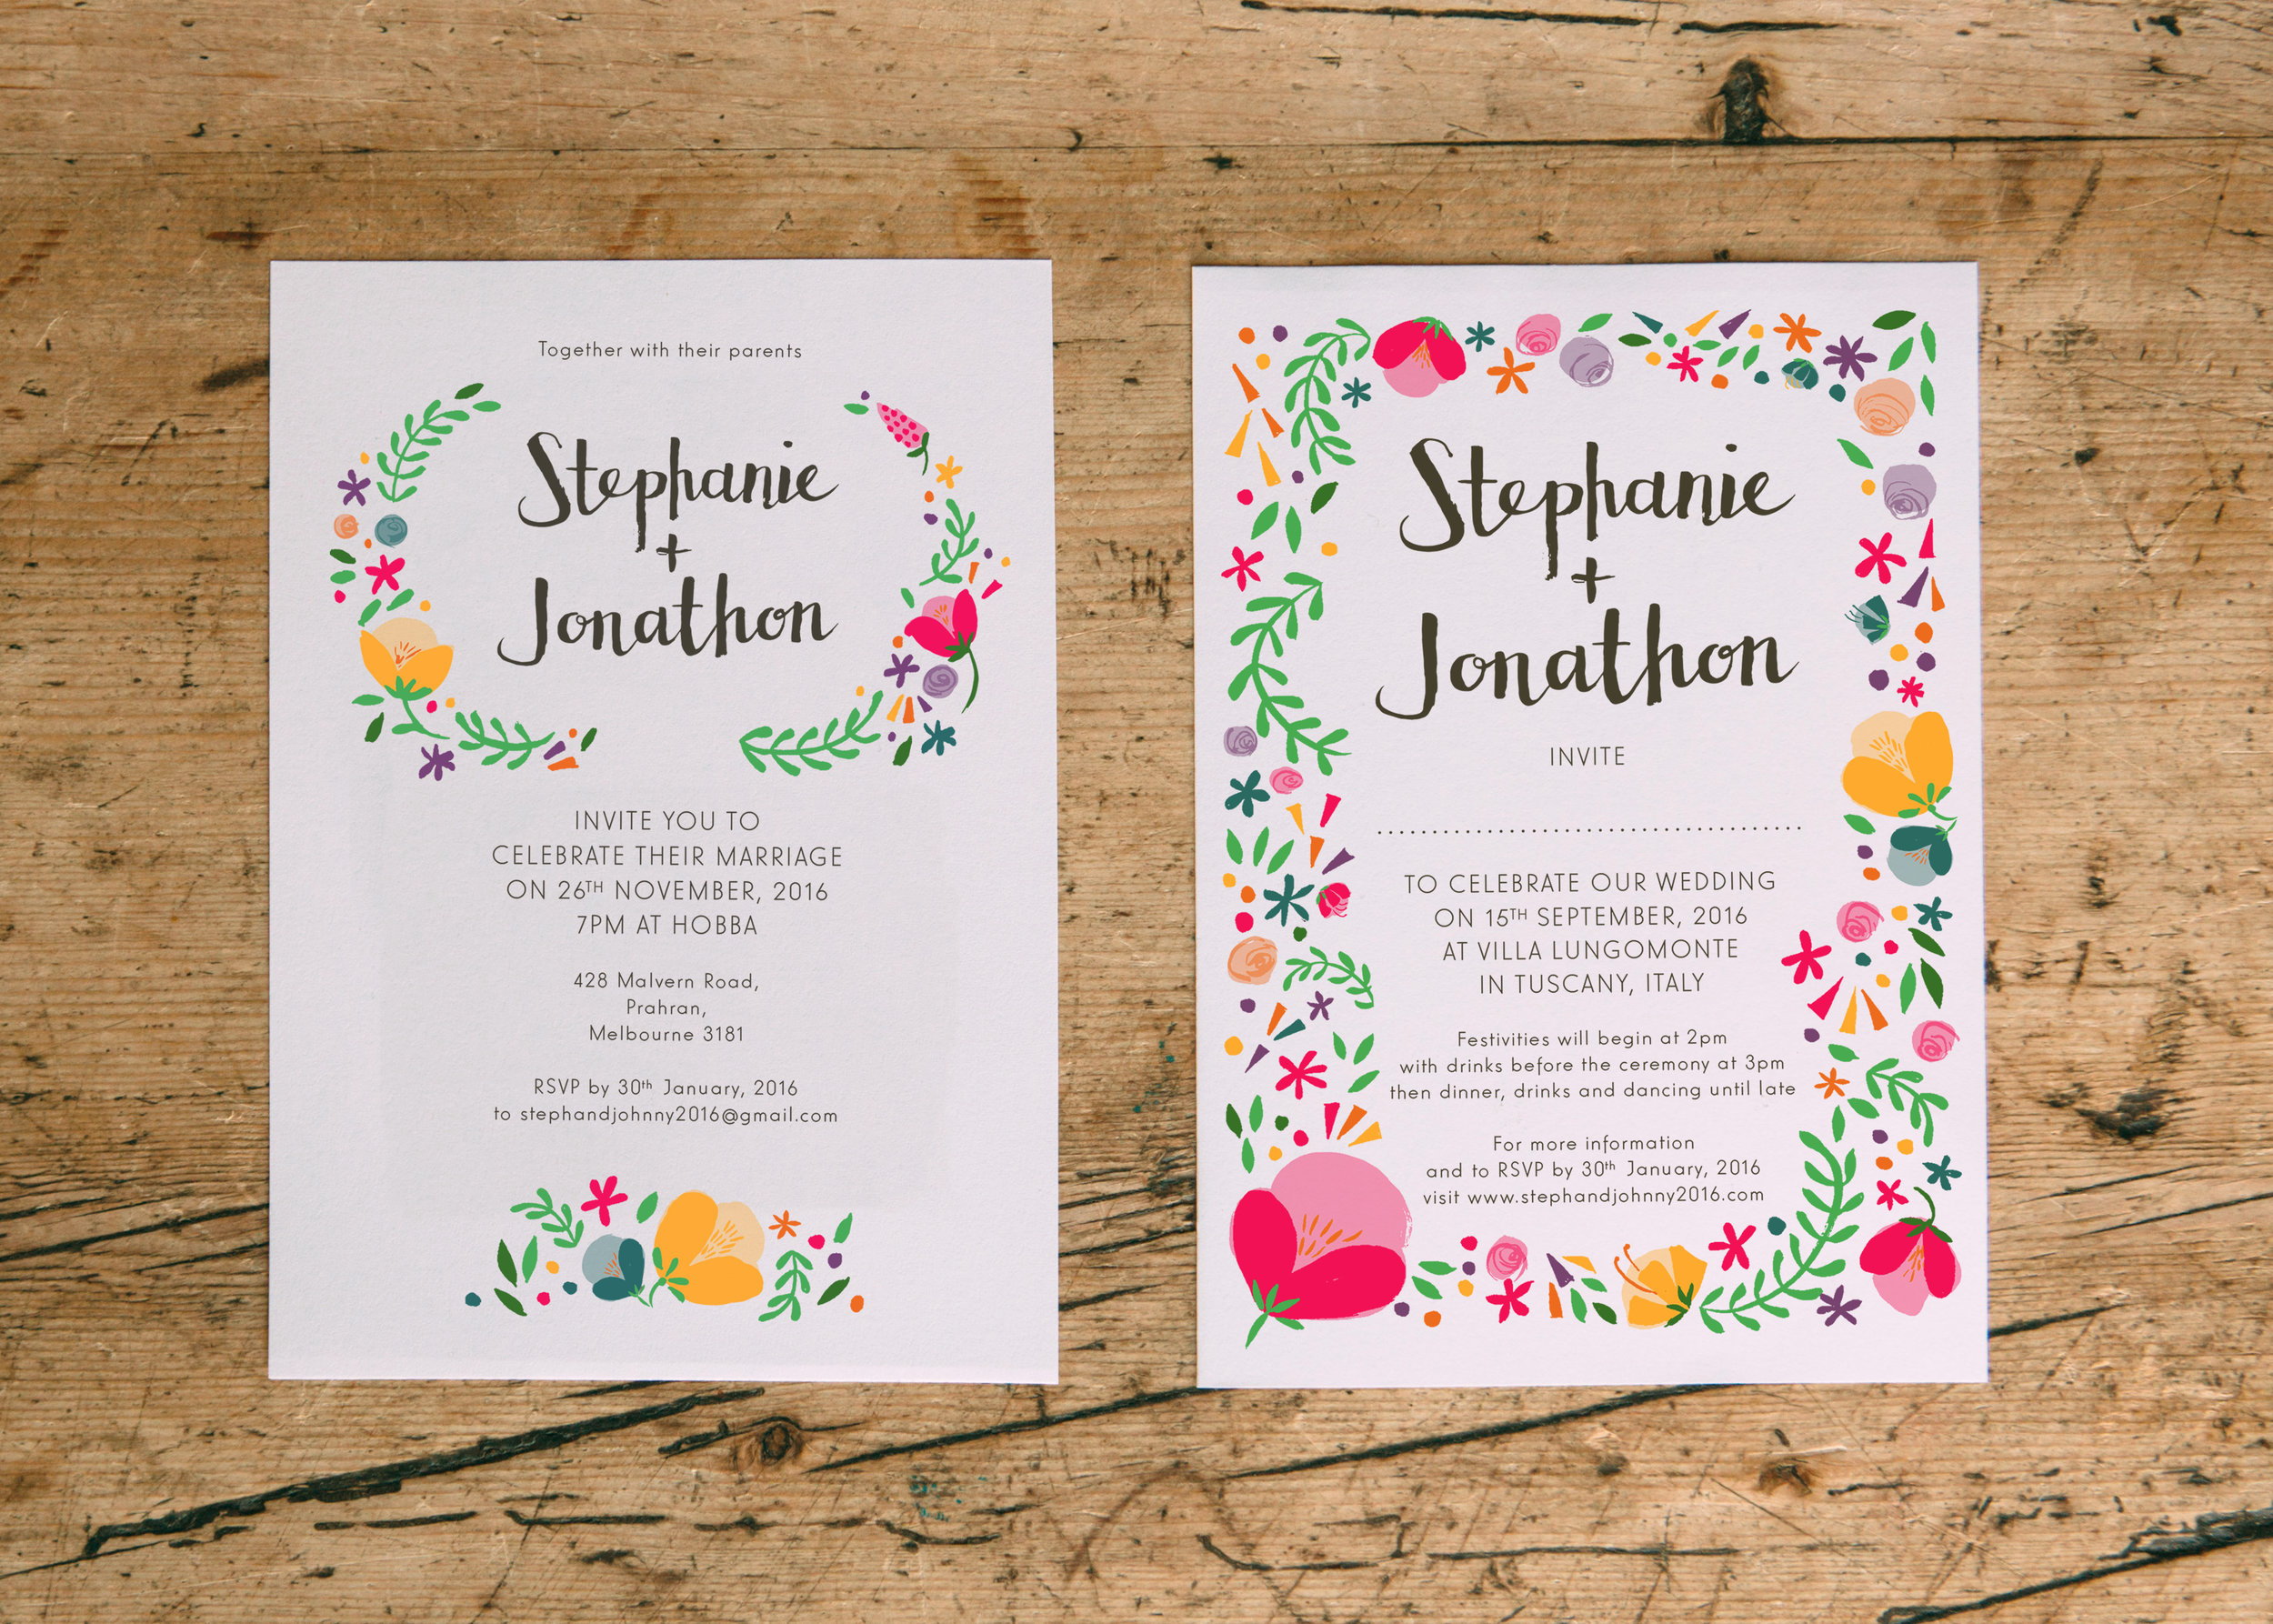 dearly-beloved-modern-destination-wedding-bespoke-invitation-2